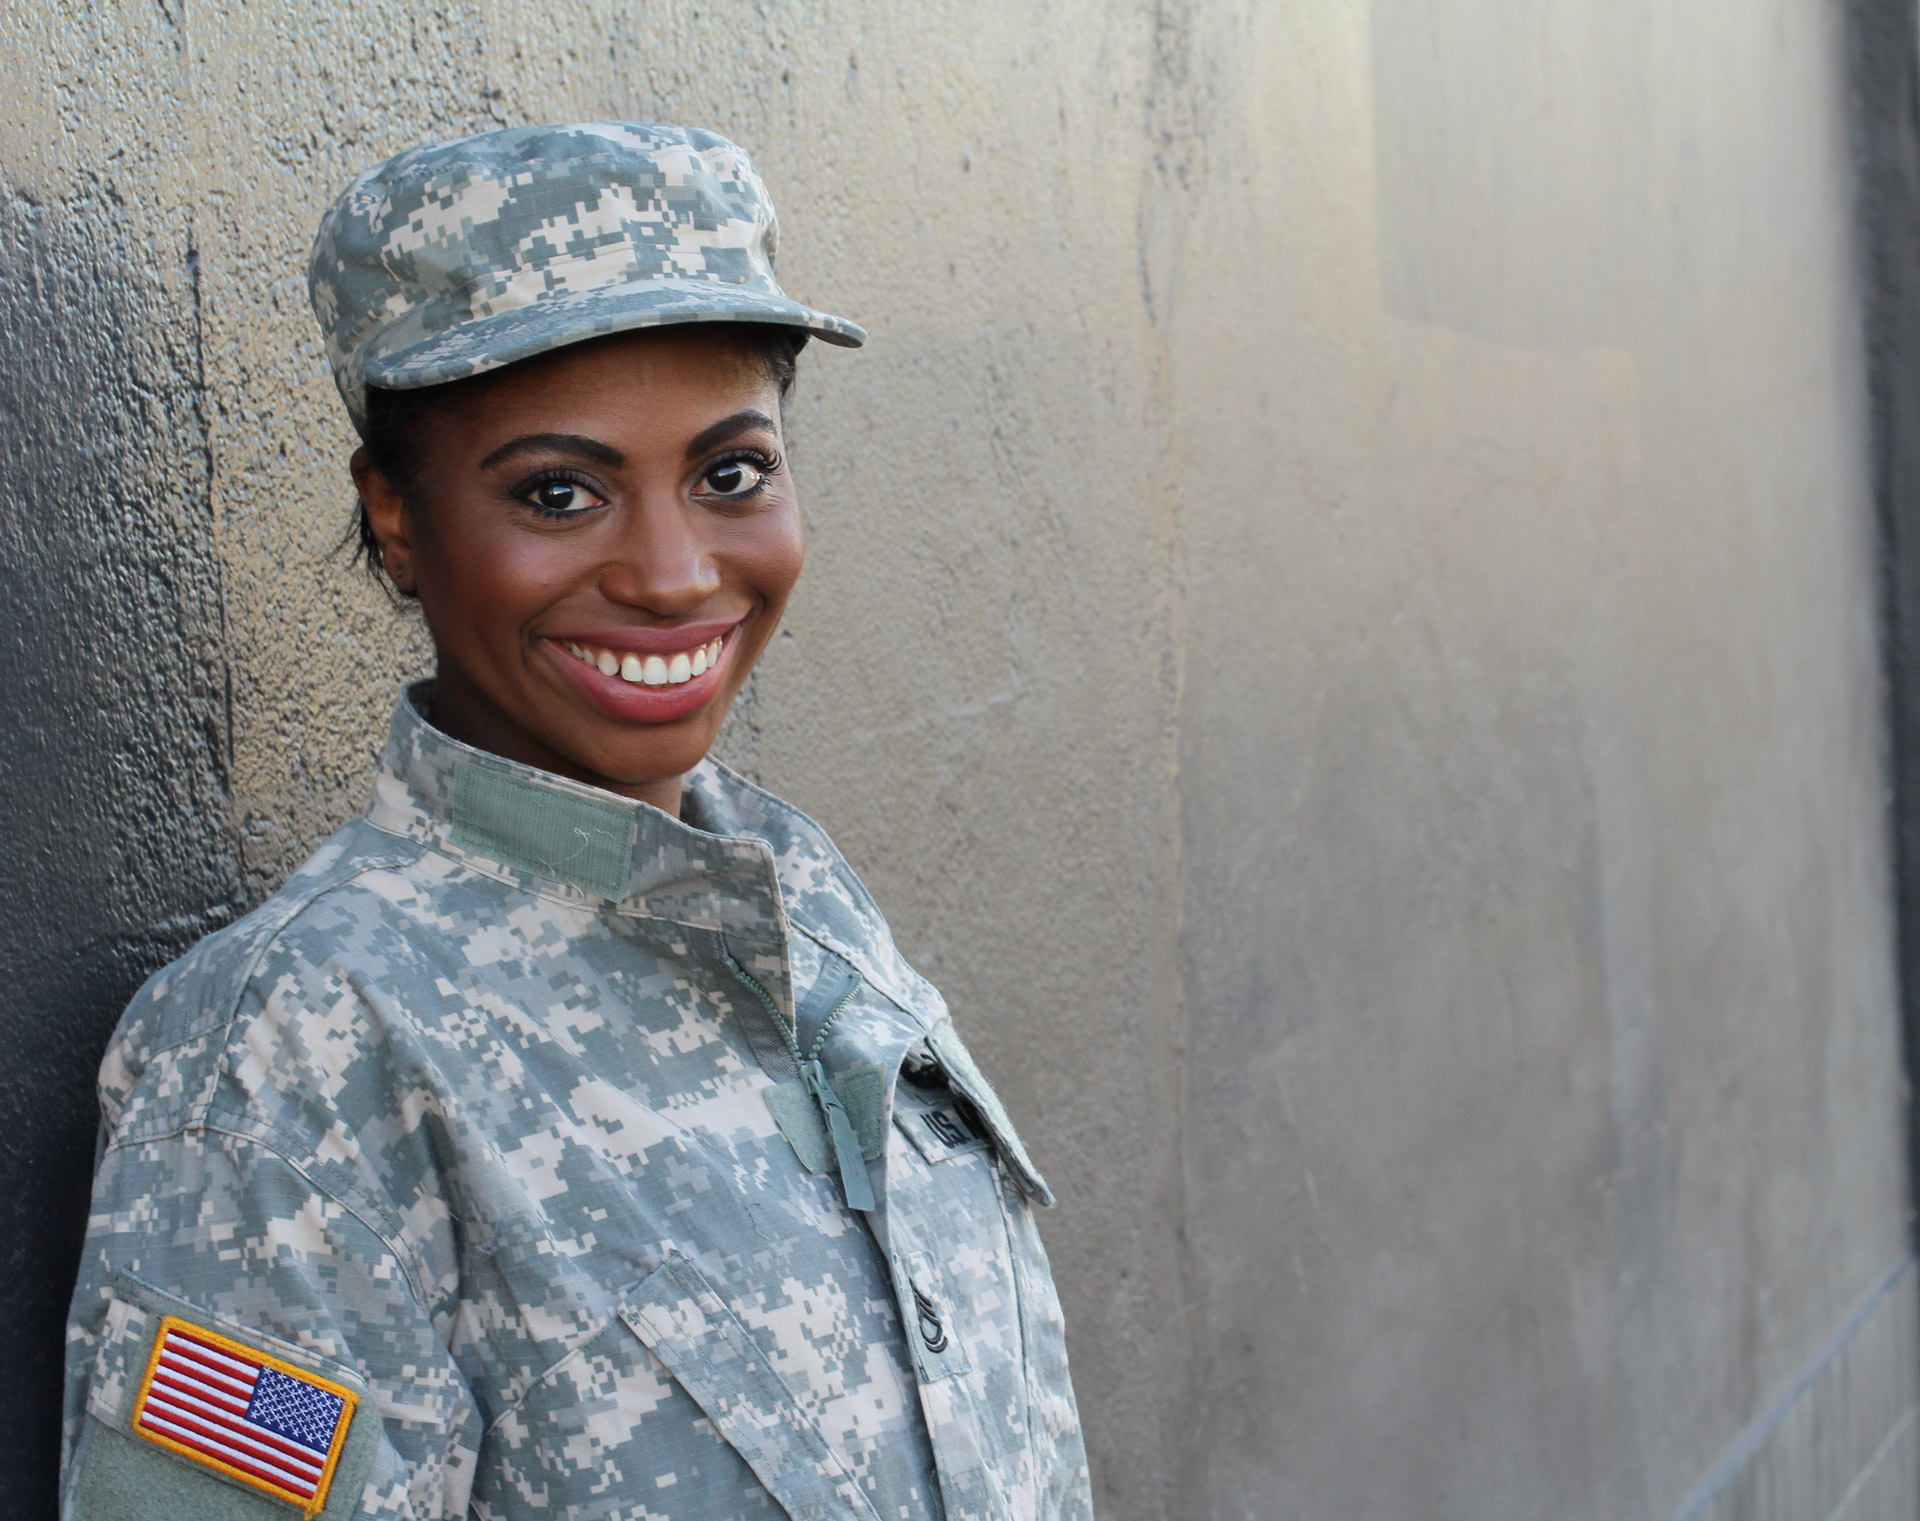 a female US Soldier smiling